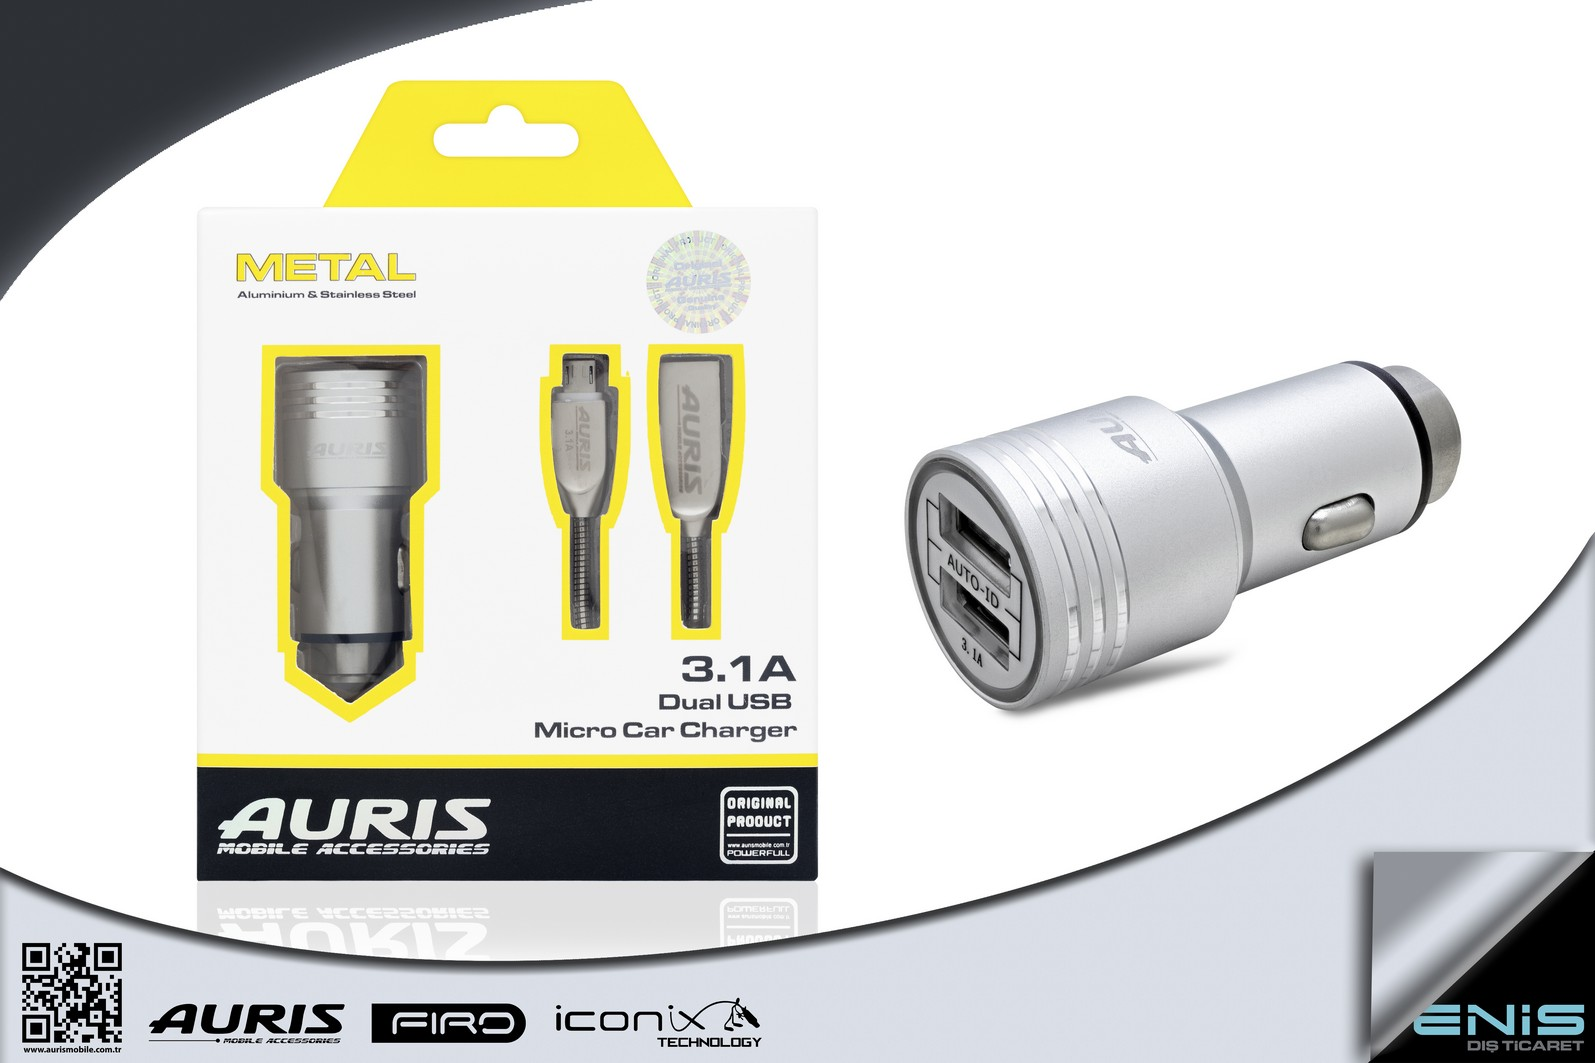 Metal Dual Usb Micro Car Charger 3.1A